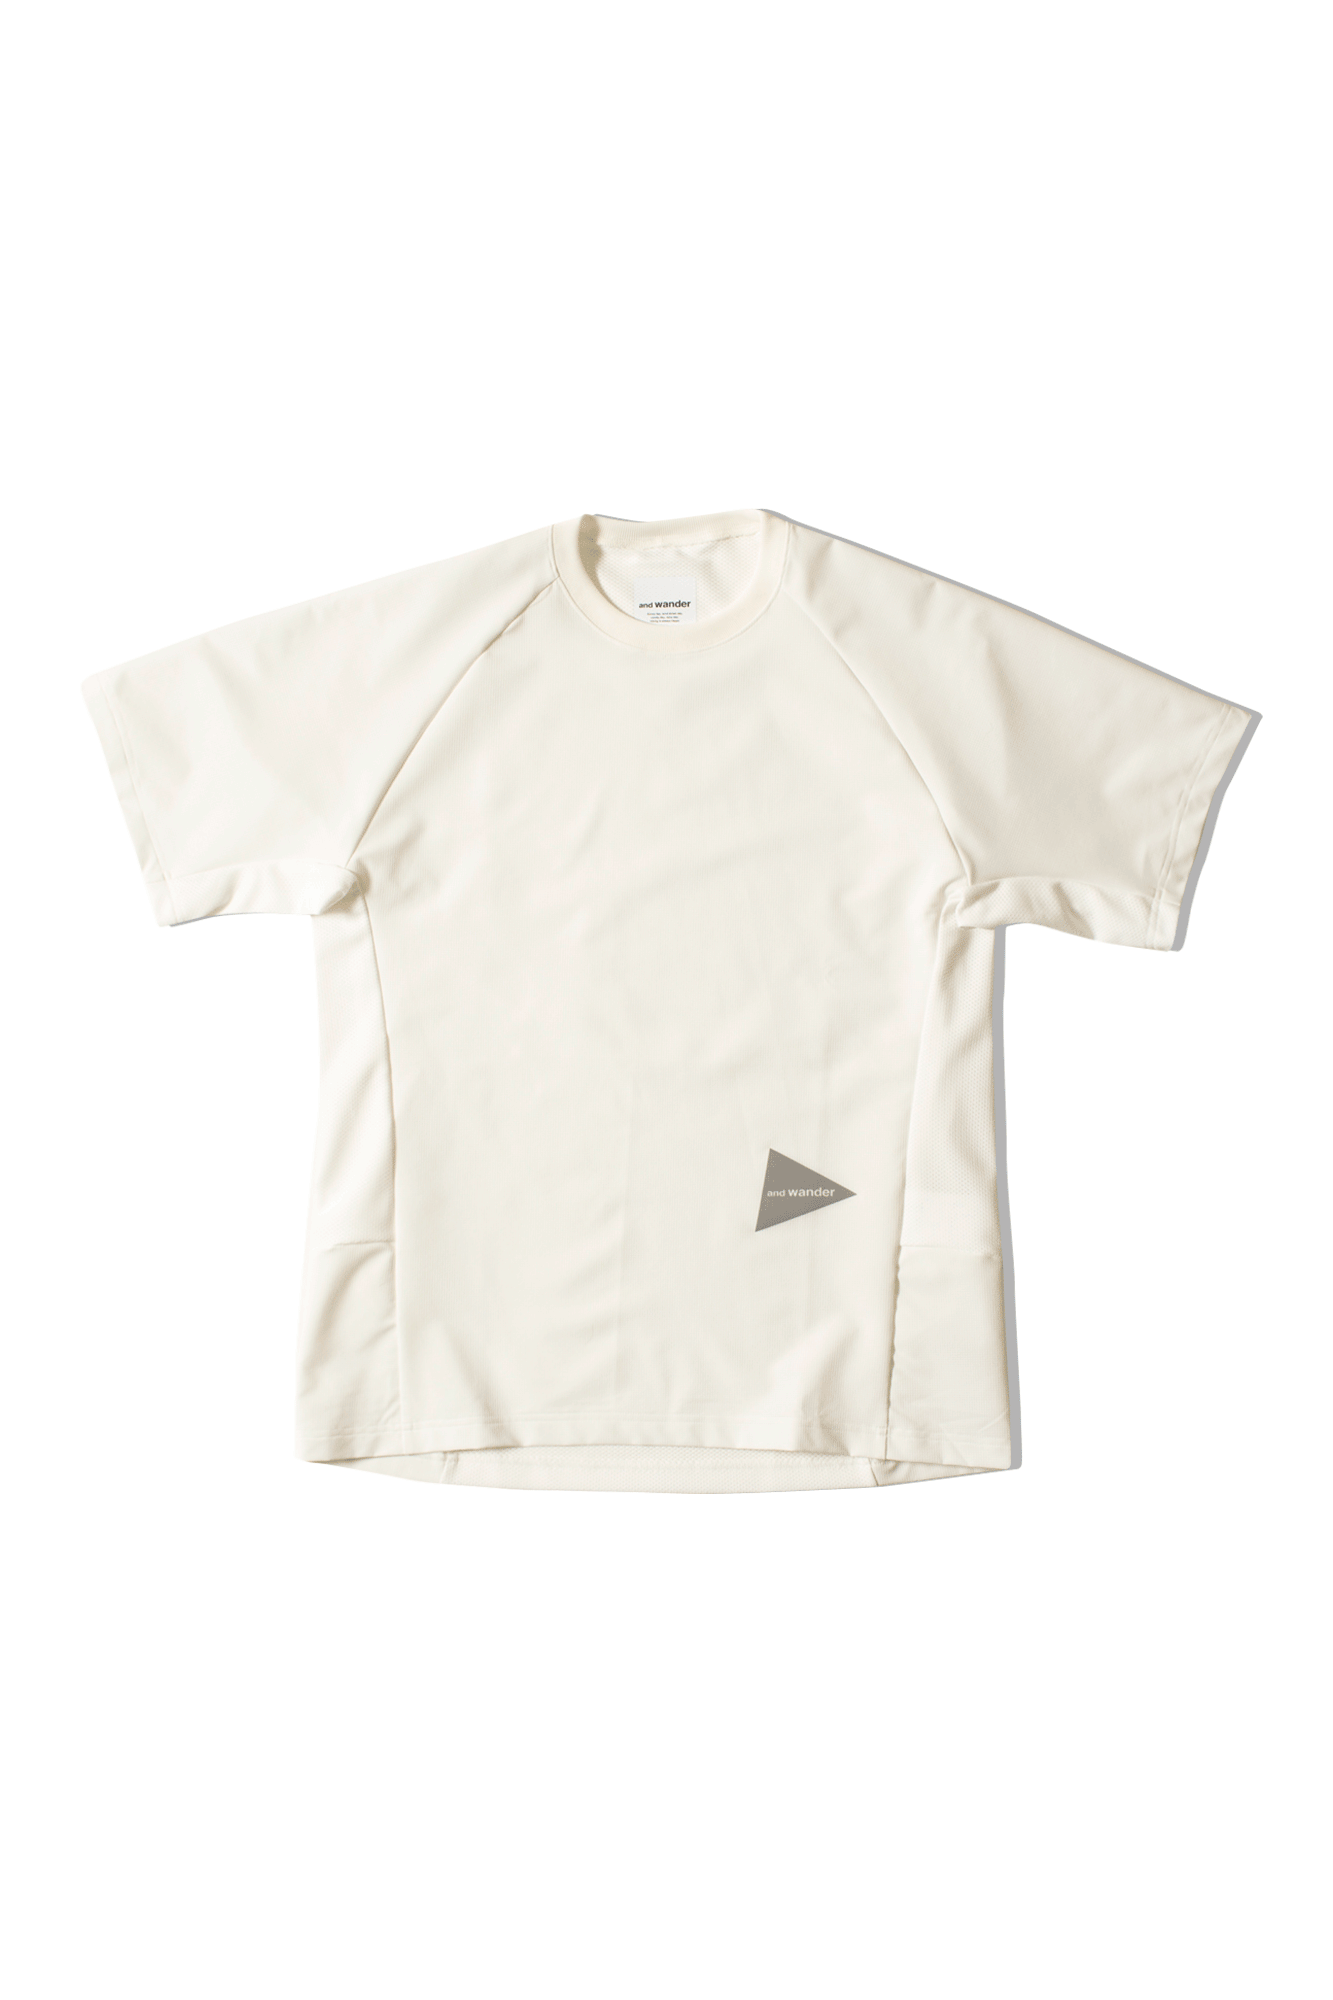 And Wander T-Shirts Hybrid Base S/SL Tee White AW91-FT023#000#WHT#0 - One Block Down